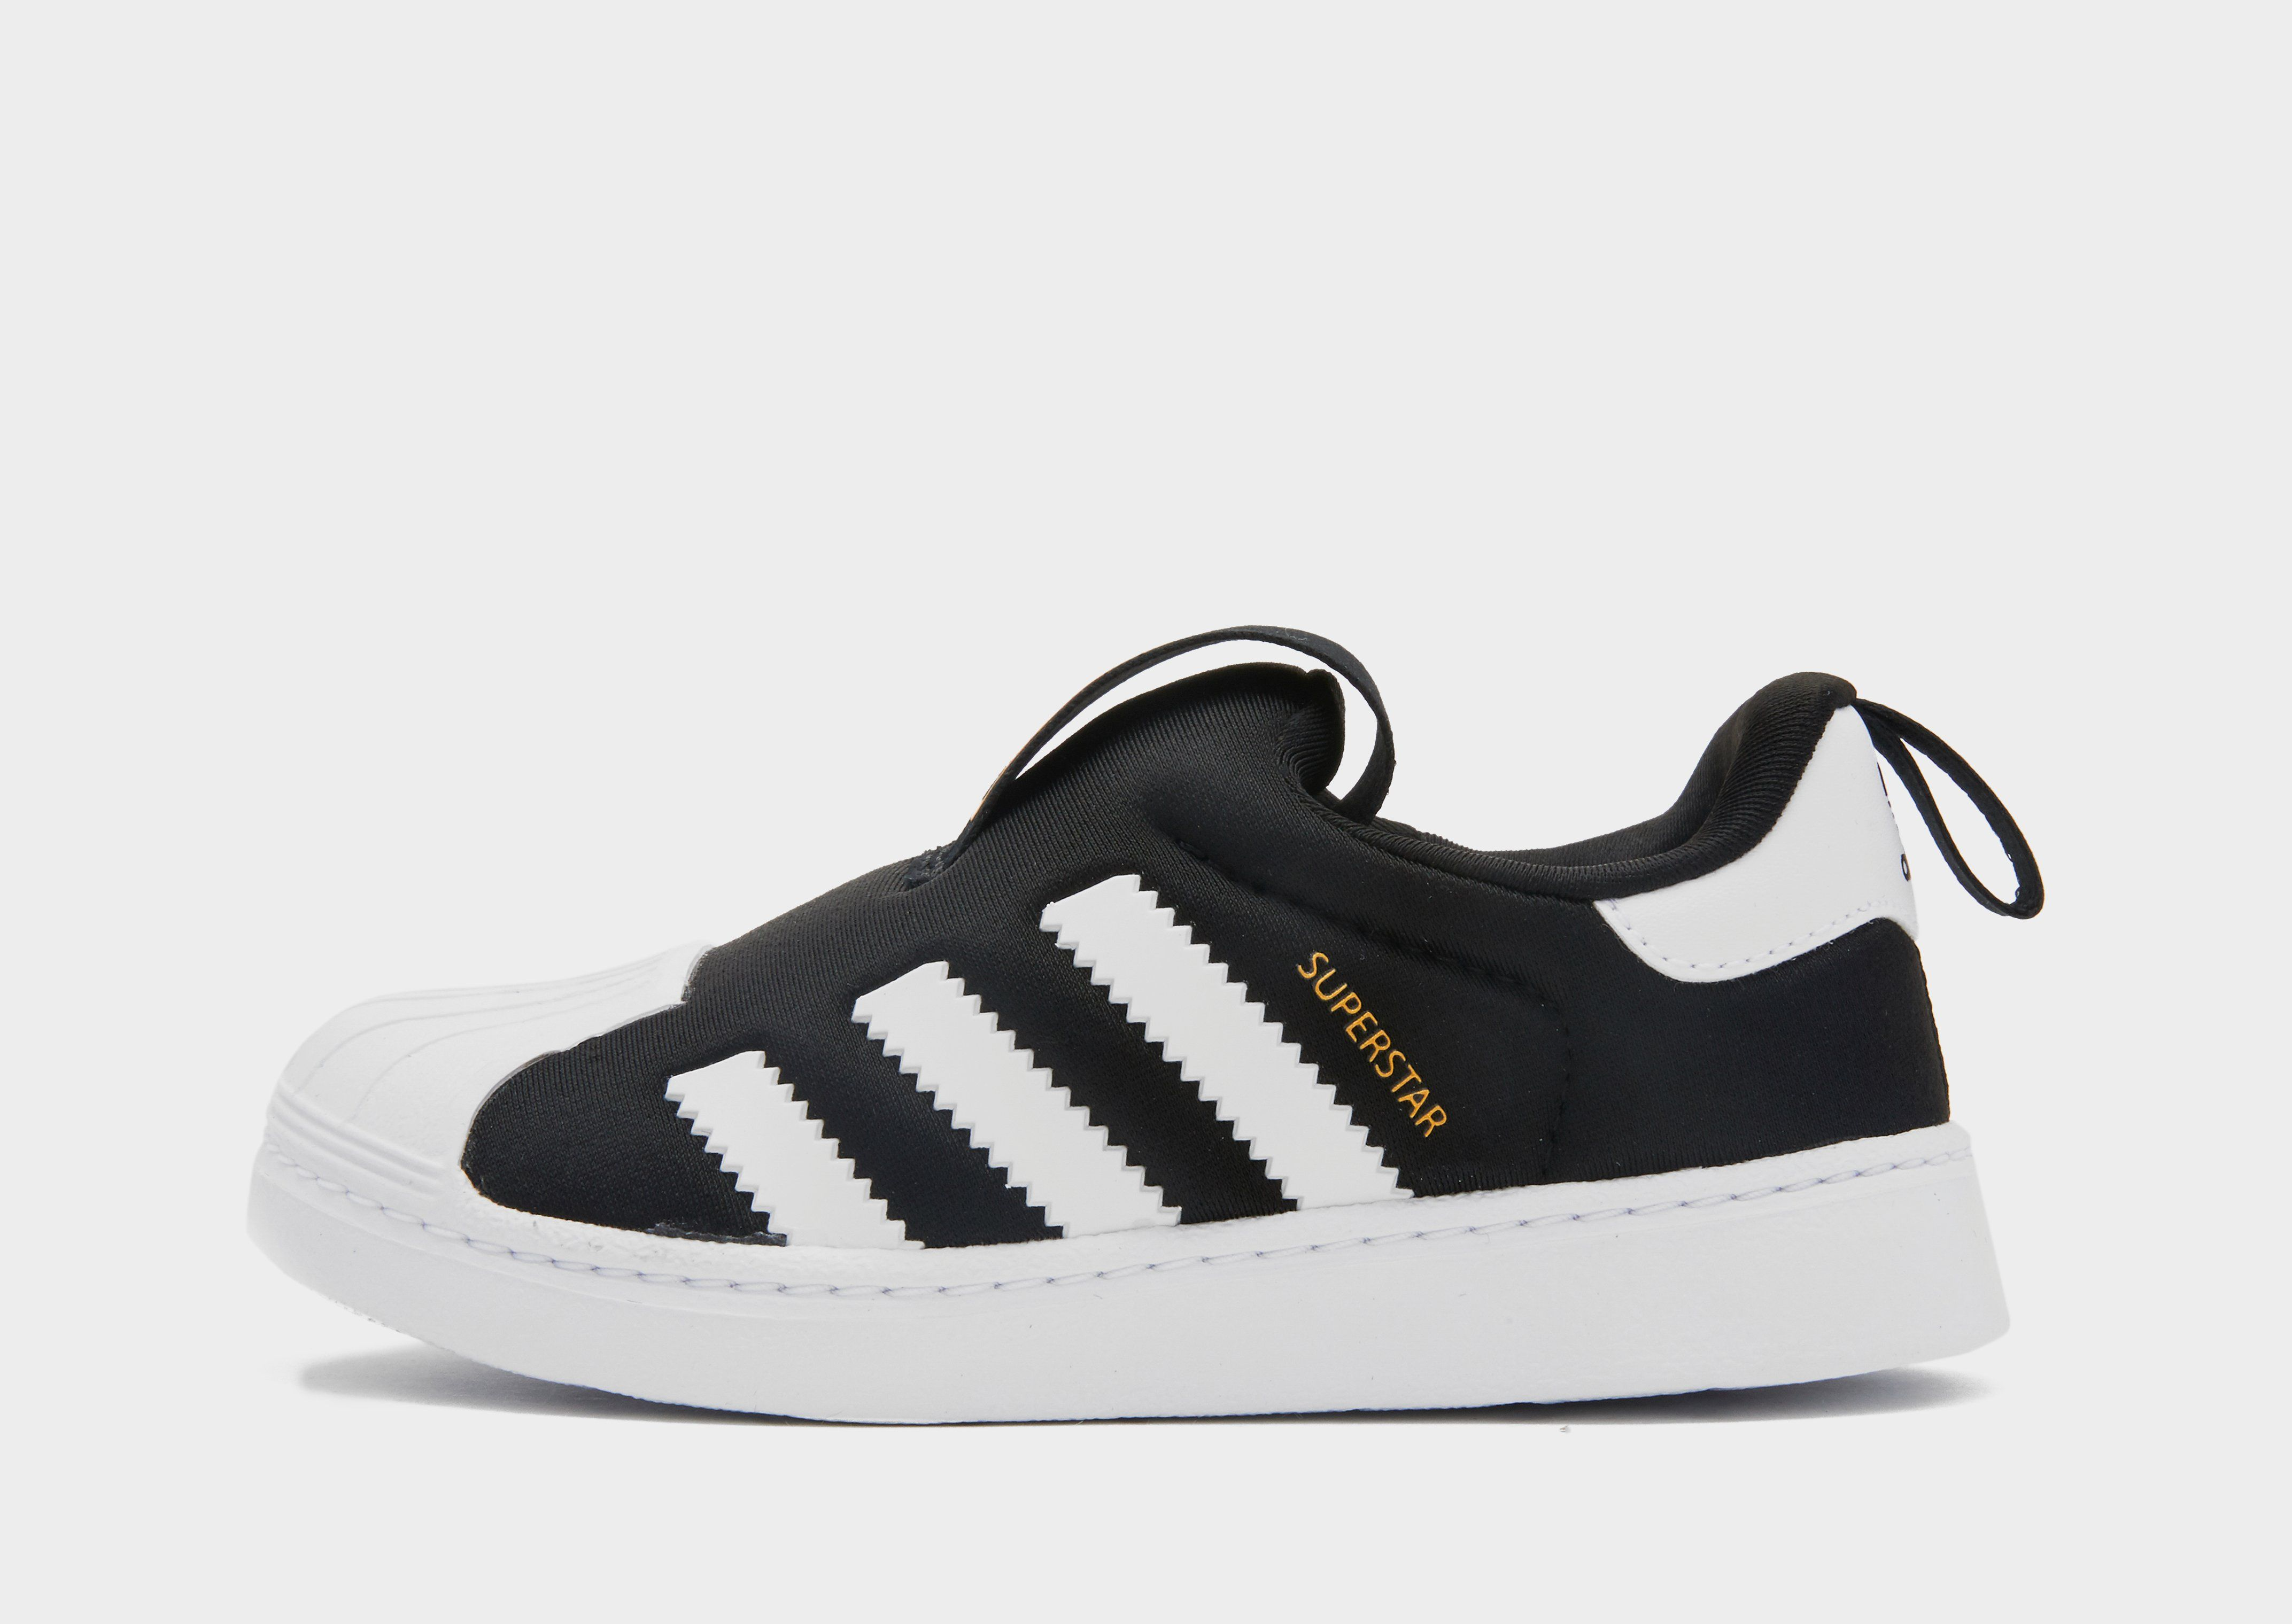 best sneakers a49ae 19f91 ADIDAS Superstar 360 Shoes   JD Sports